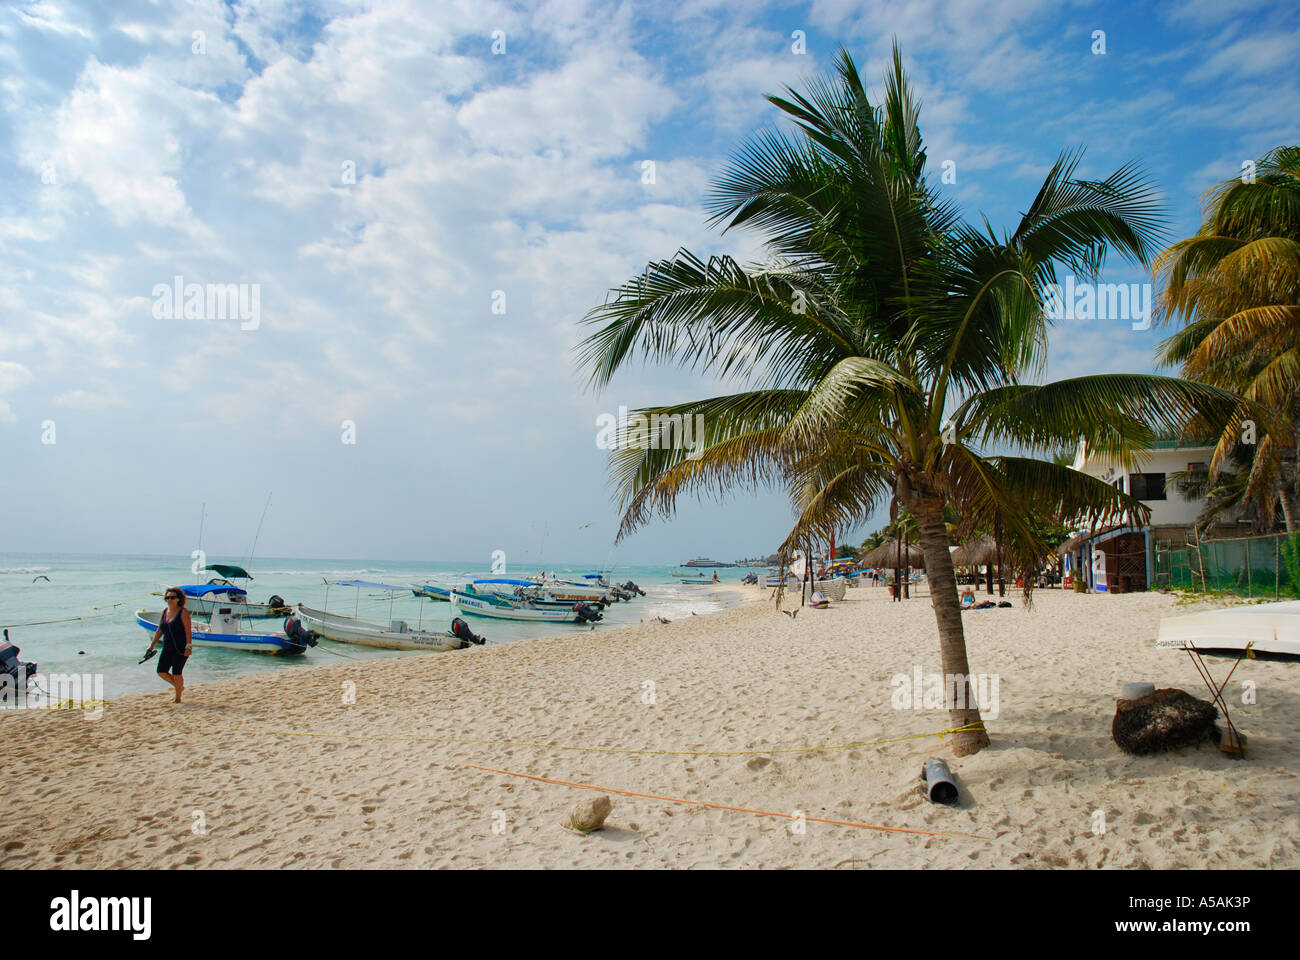 Beach life at the 10 mile long beach in Playa del Carmen Mexico Boats palm tree - Stock Image